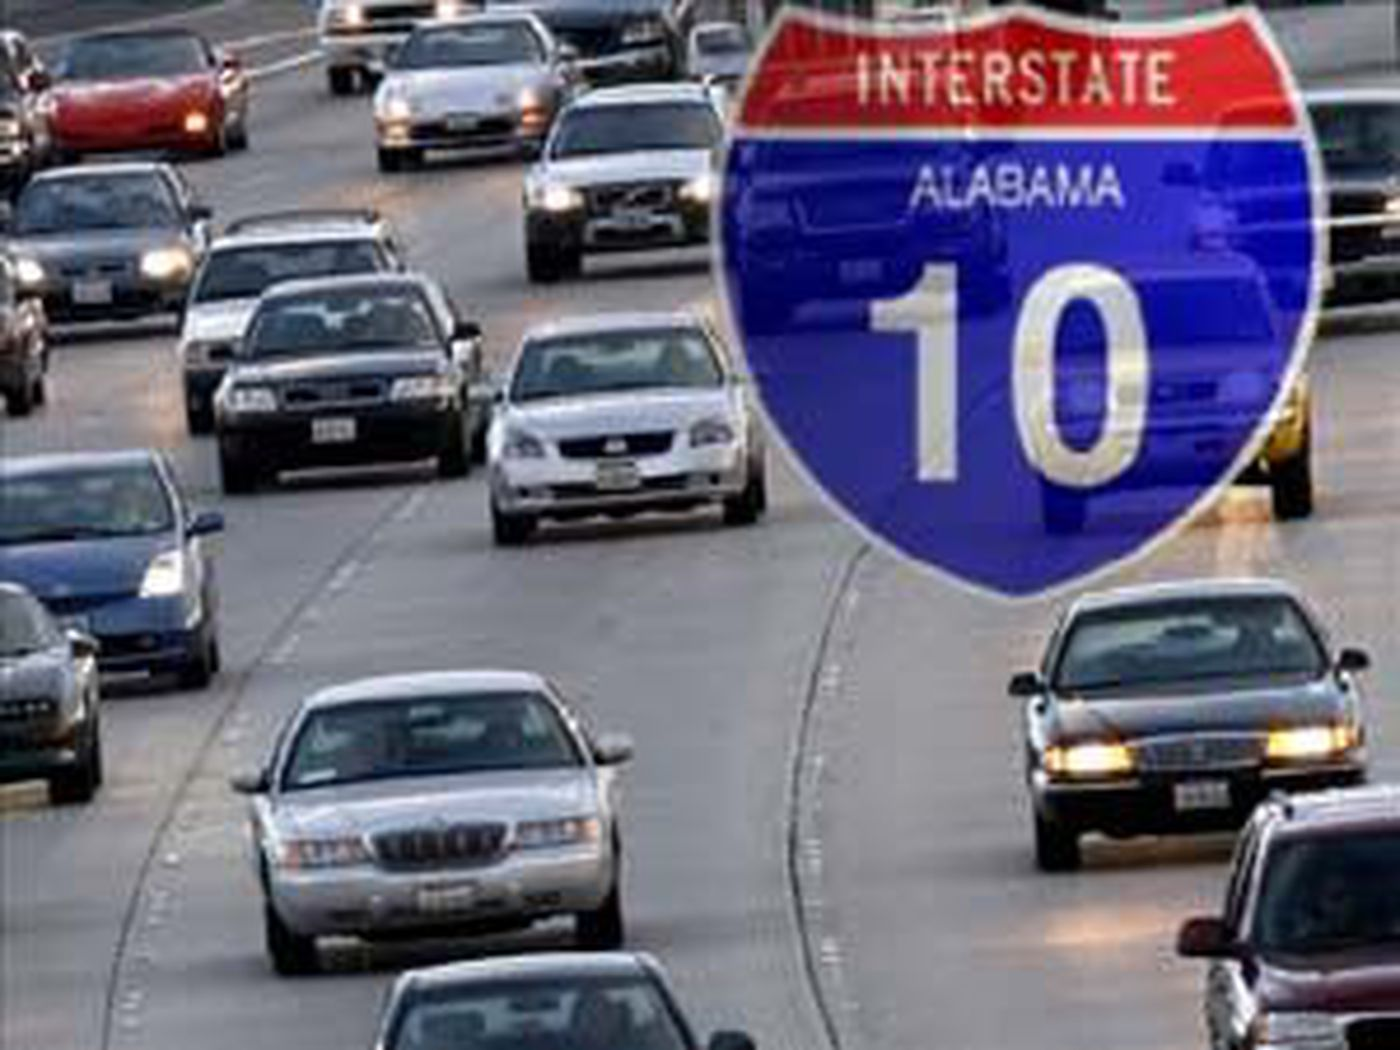 Ramps from I-10 East to I-10 West to be closed